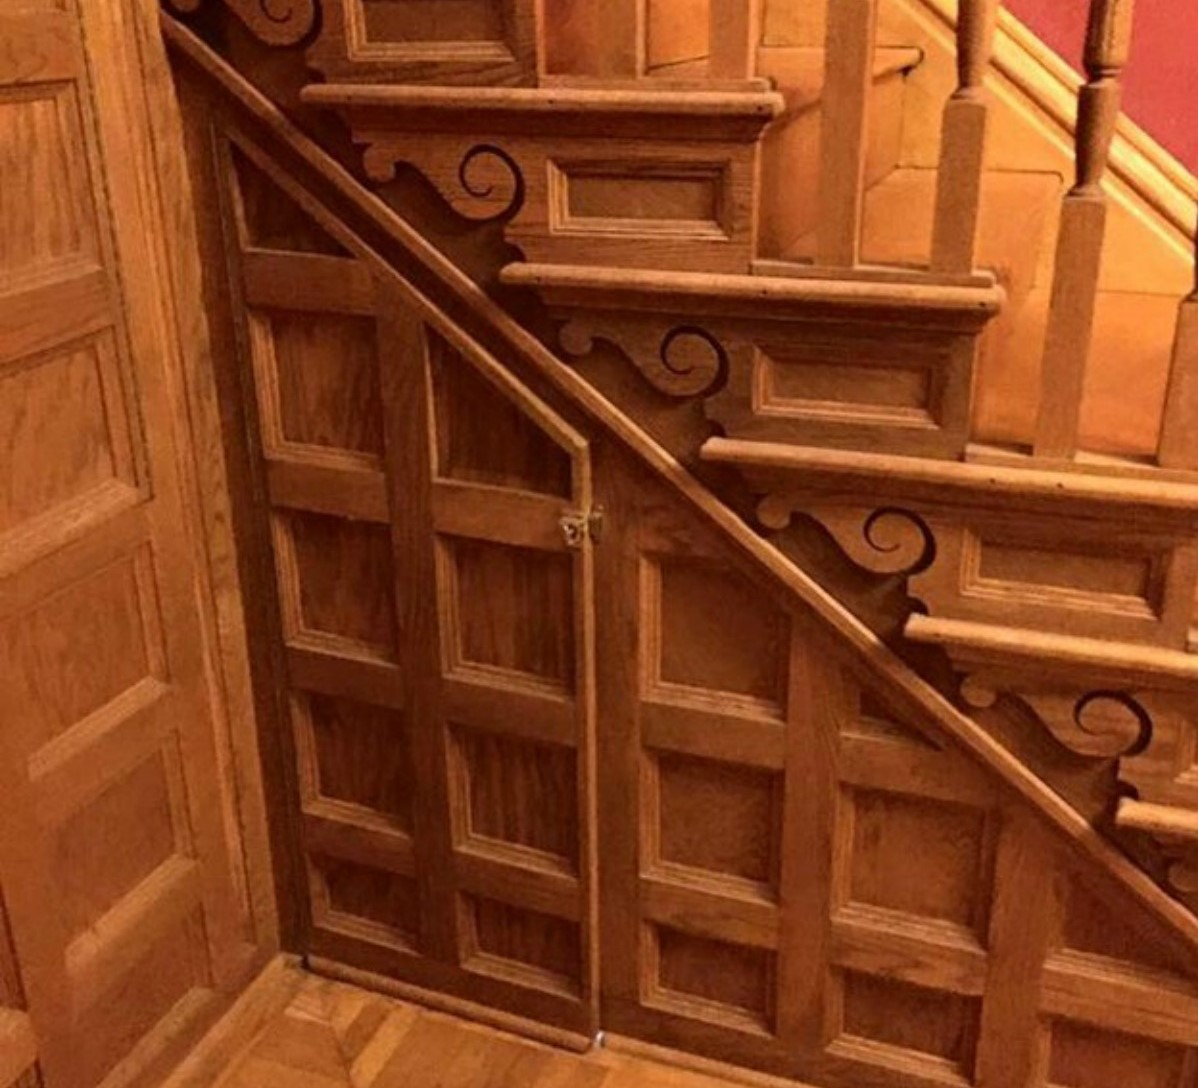 A staircase with careful woodwork appears to have an opening.